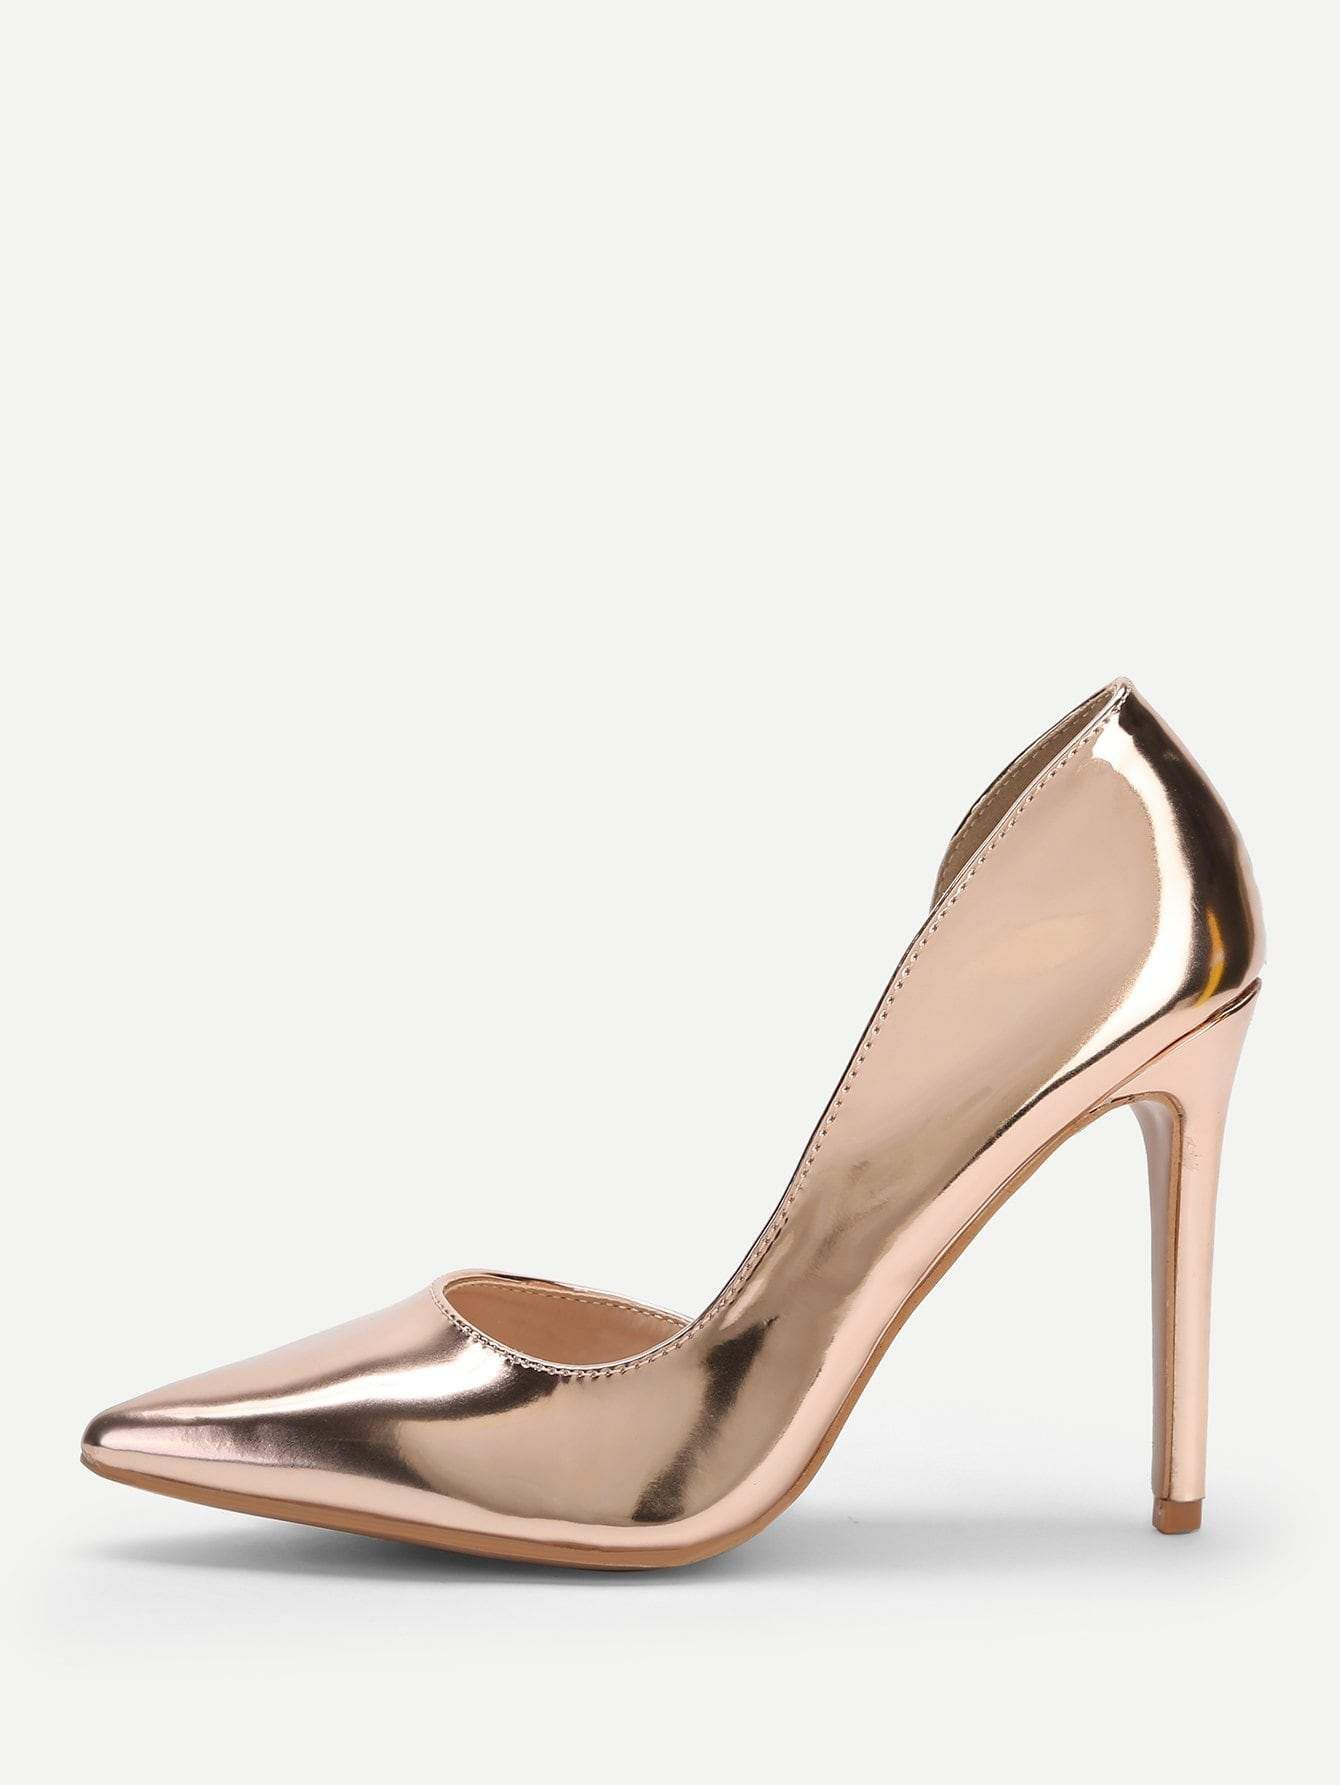 41cdc8c97d73 Metallic Pointed Toe Stiletto Heels. Find this Pin and ...